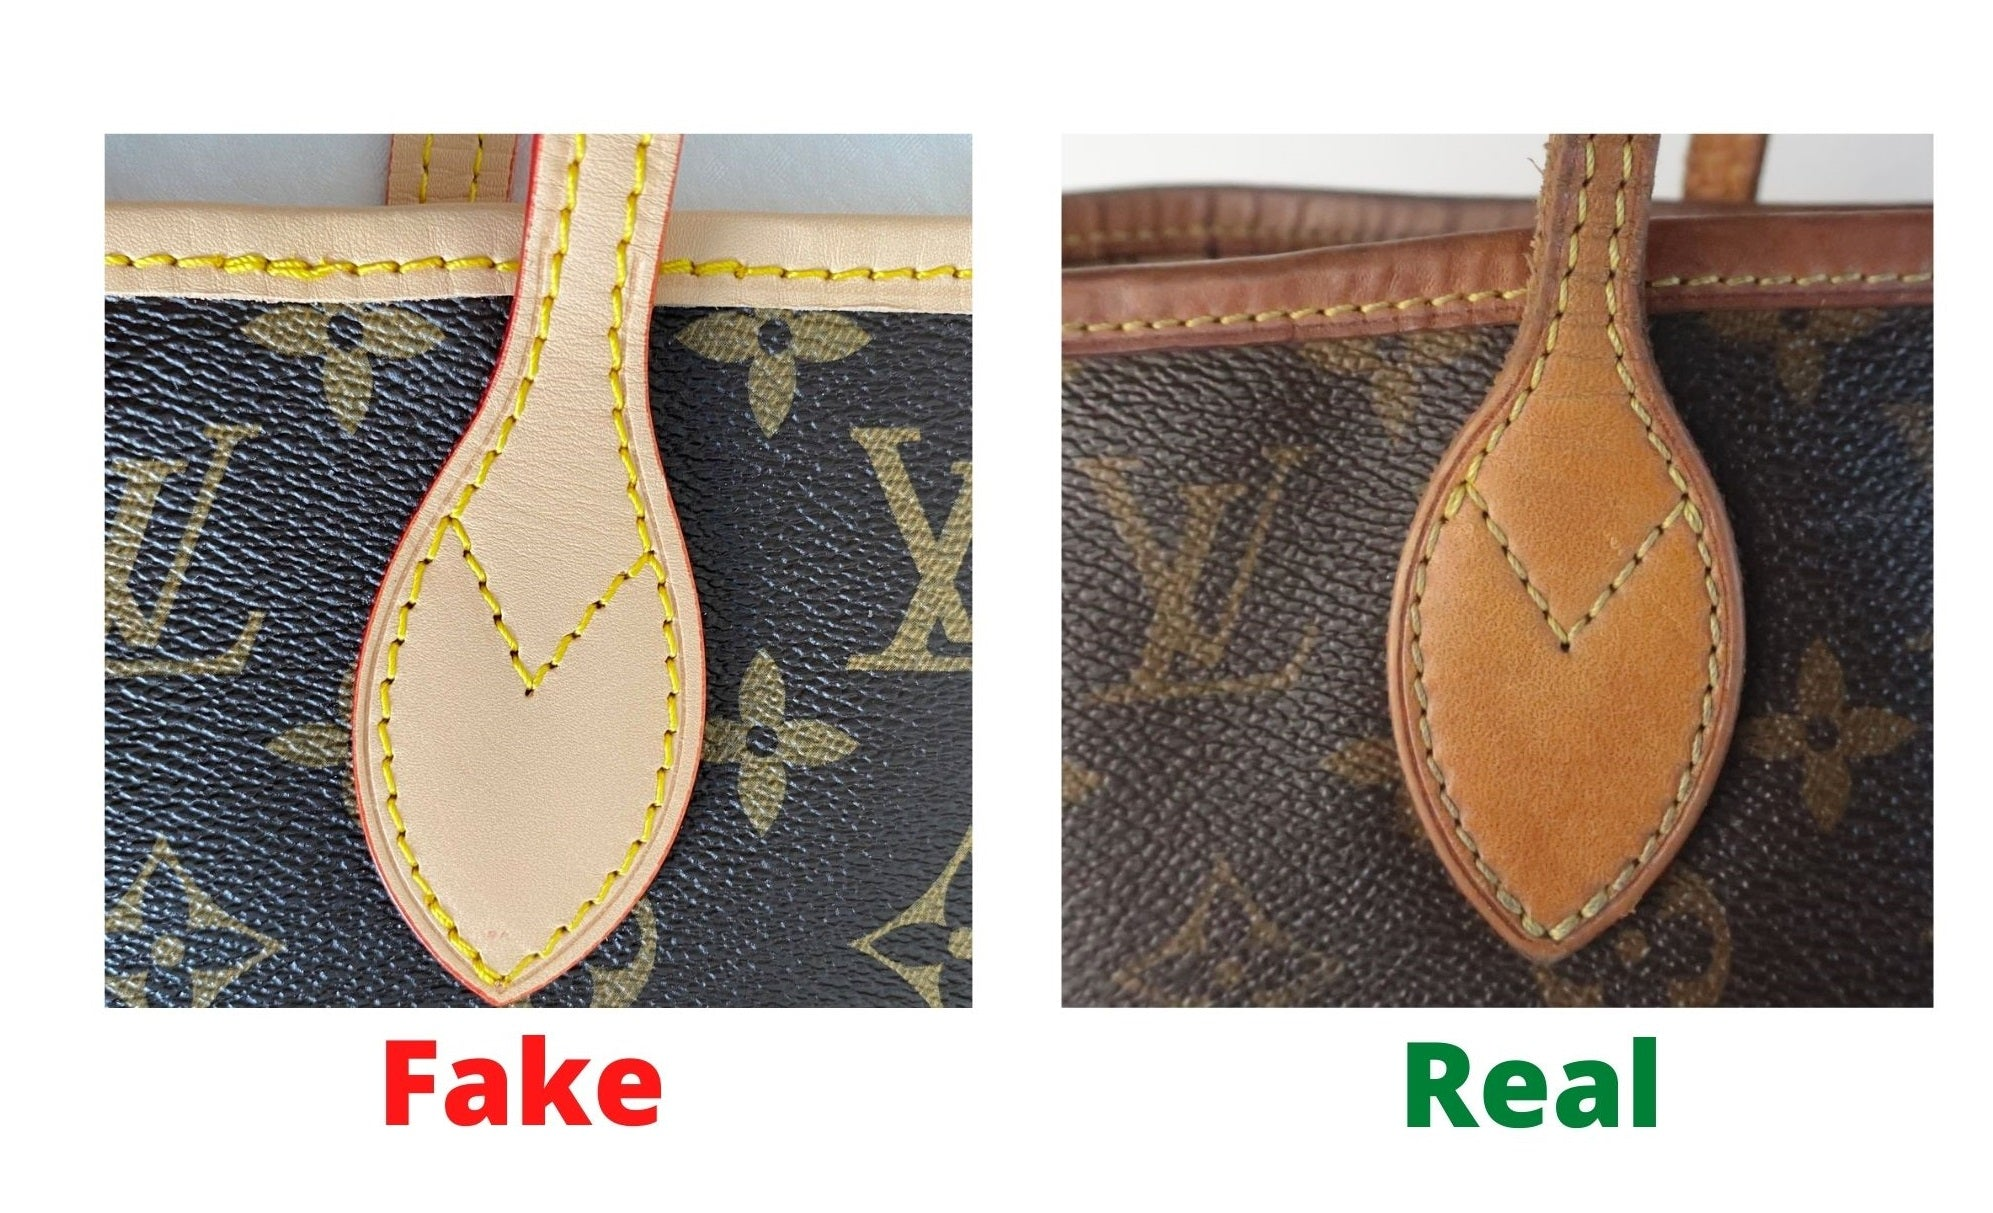 Fake Louis Vuitton Neverfull vs Real: Important Details You Should Definitely Pay Attention To (With Photo Examples) Neverfull Monogram strap